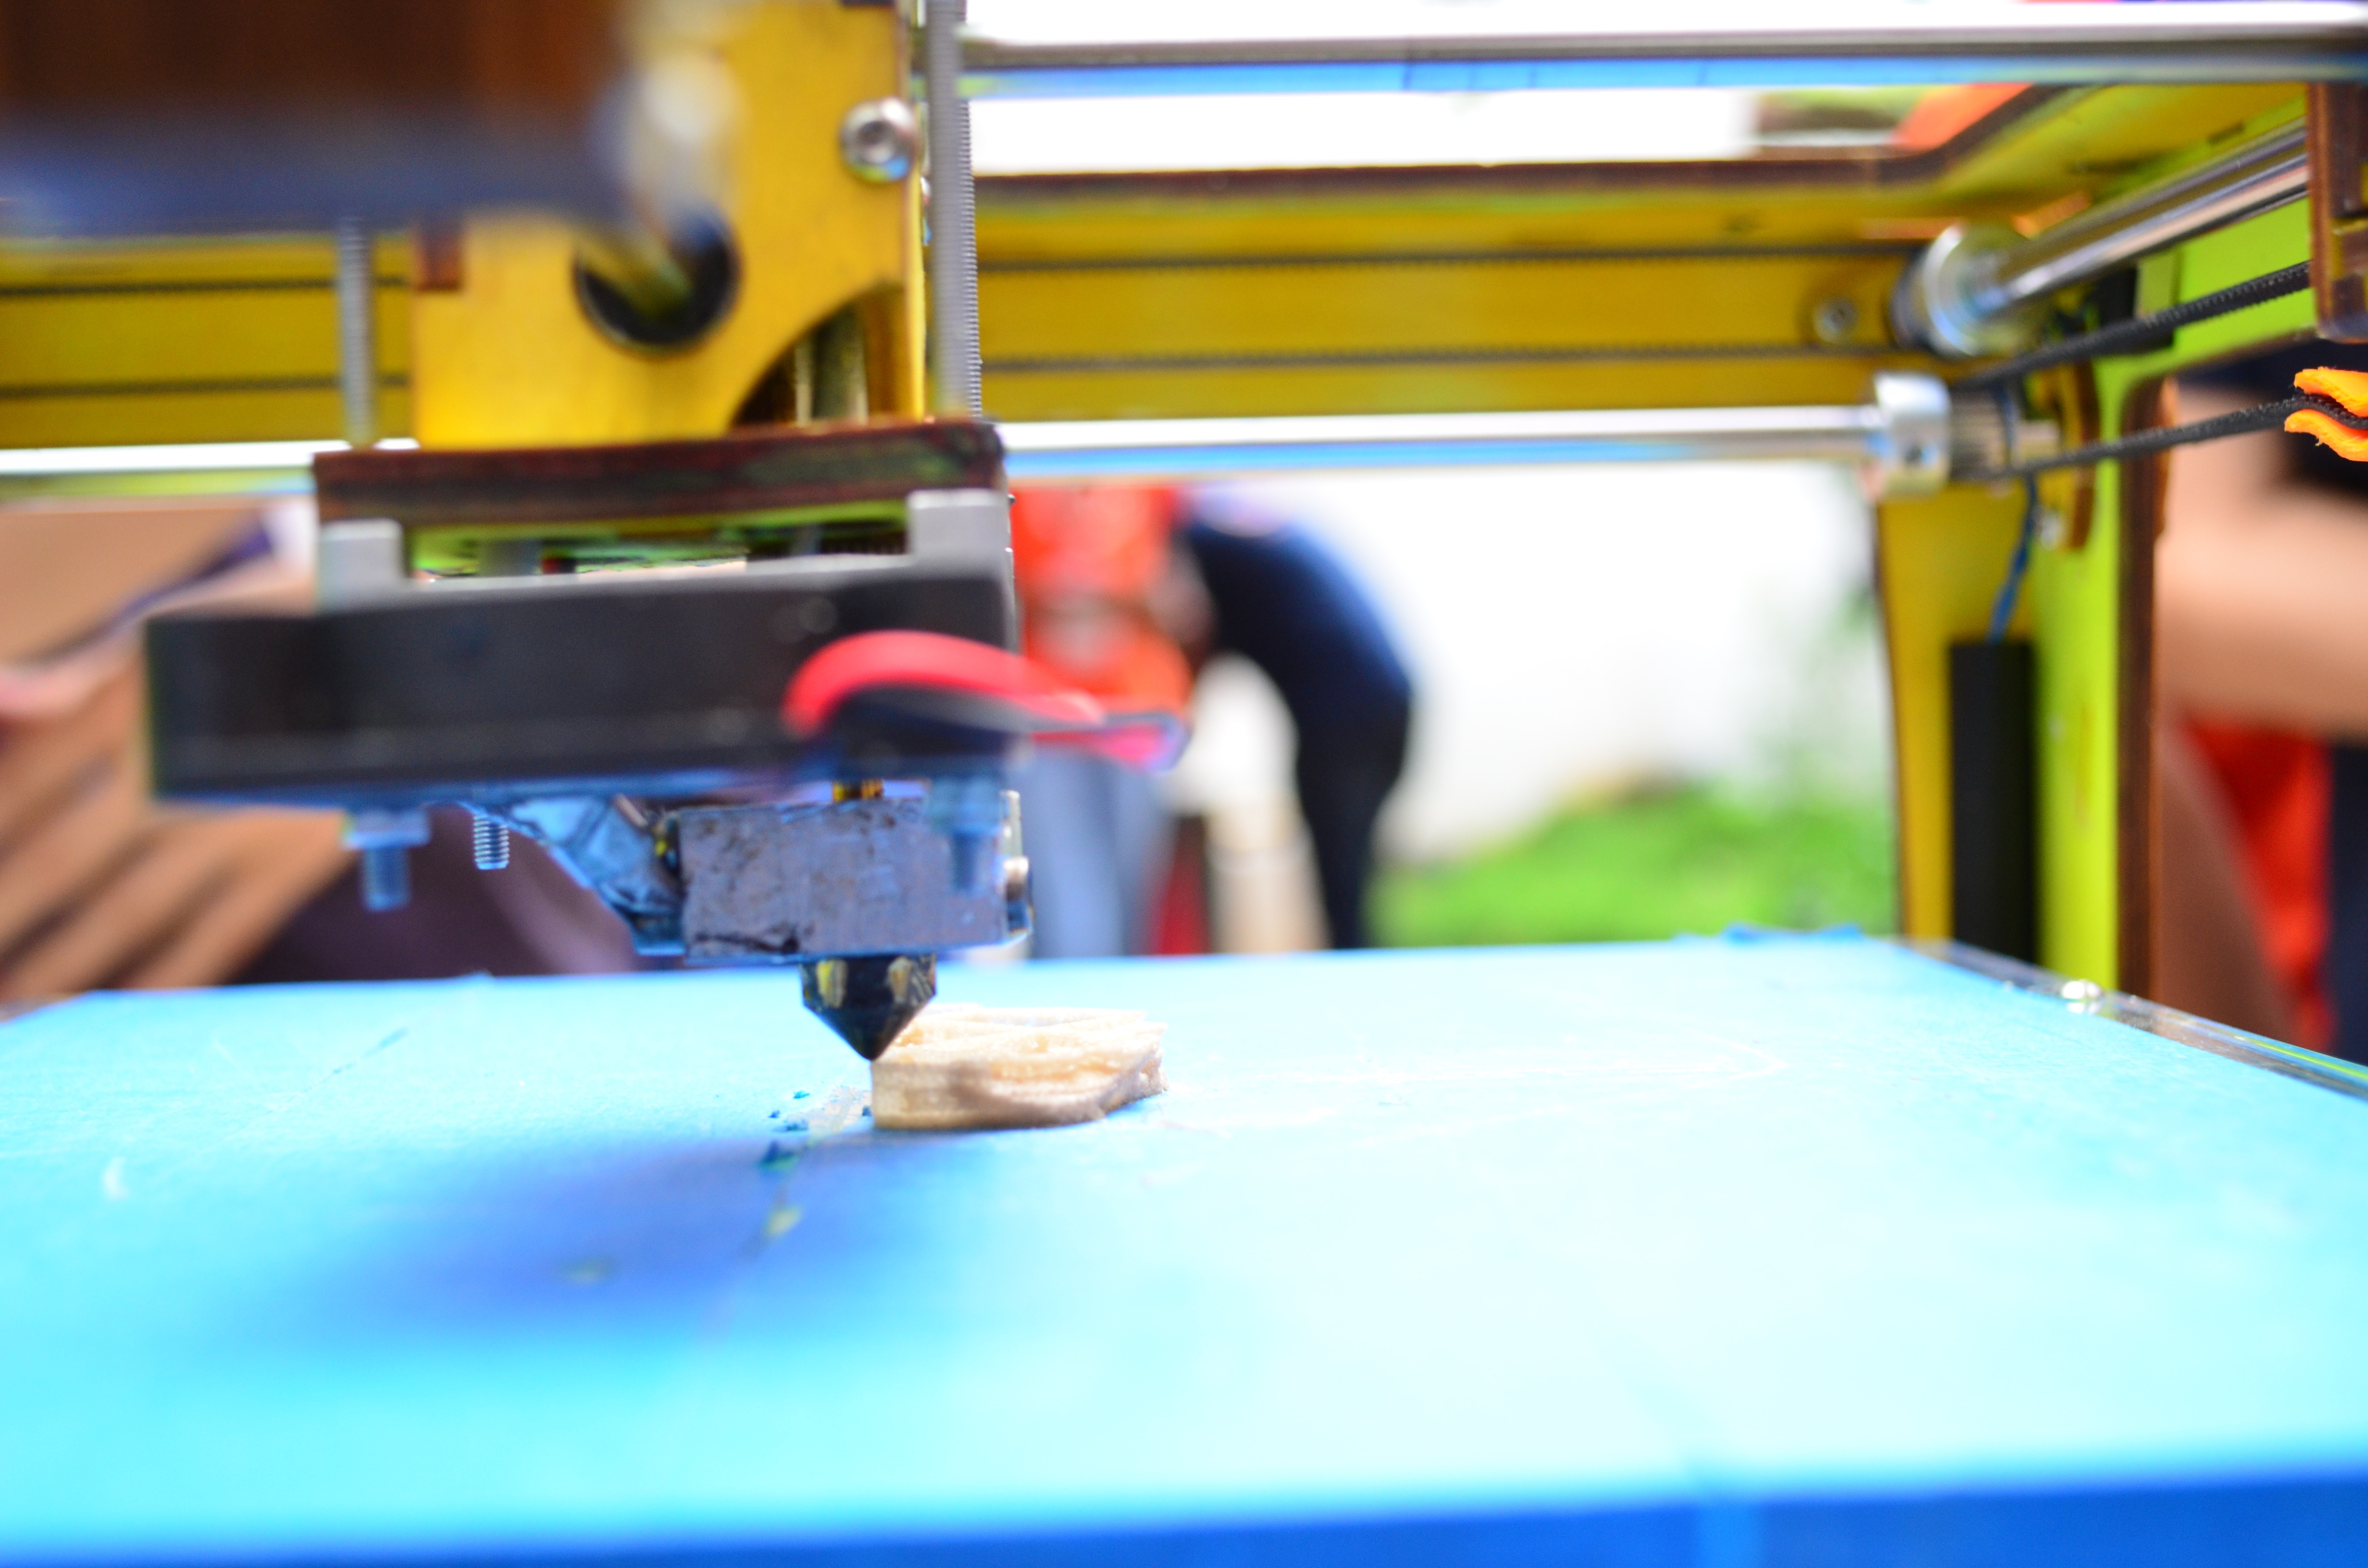 Printing_with_a_3D_printer (1)